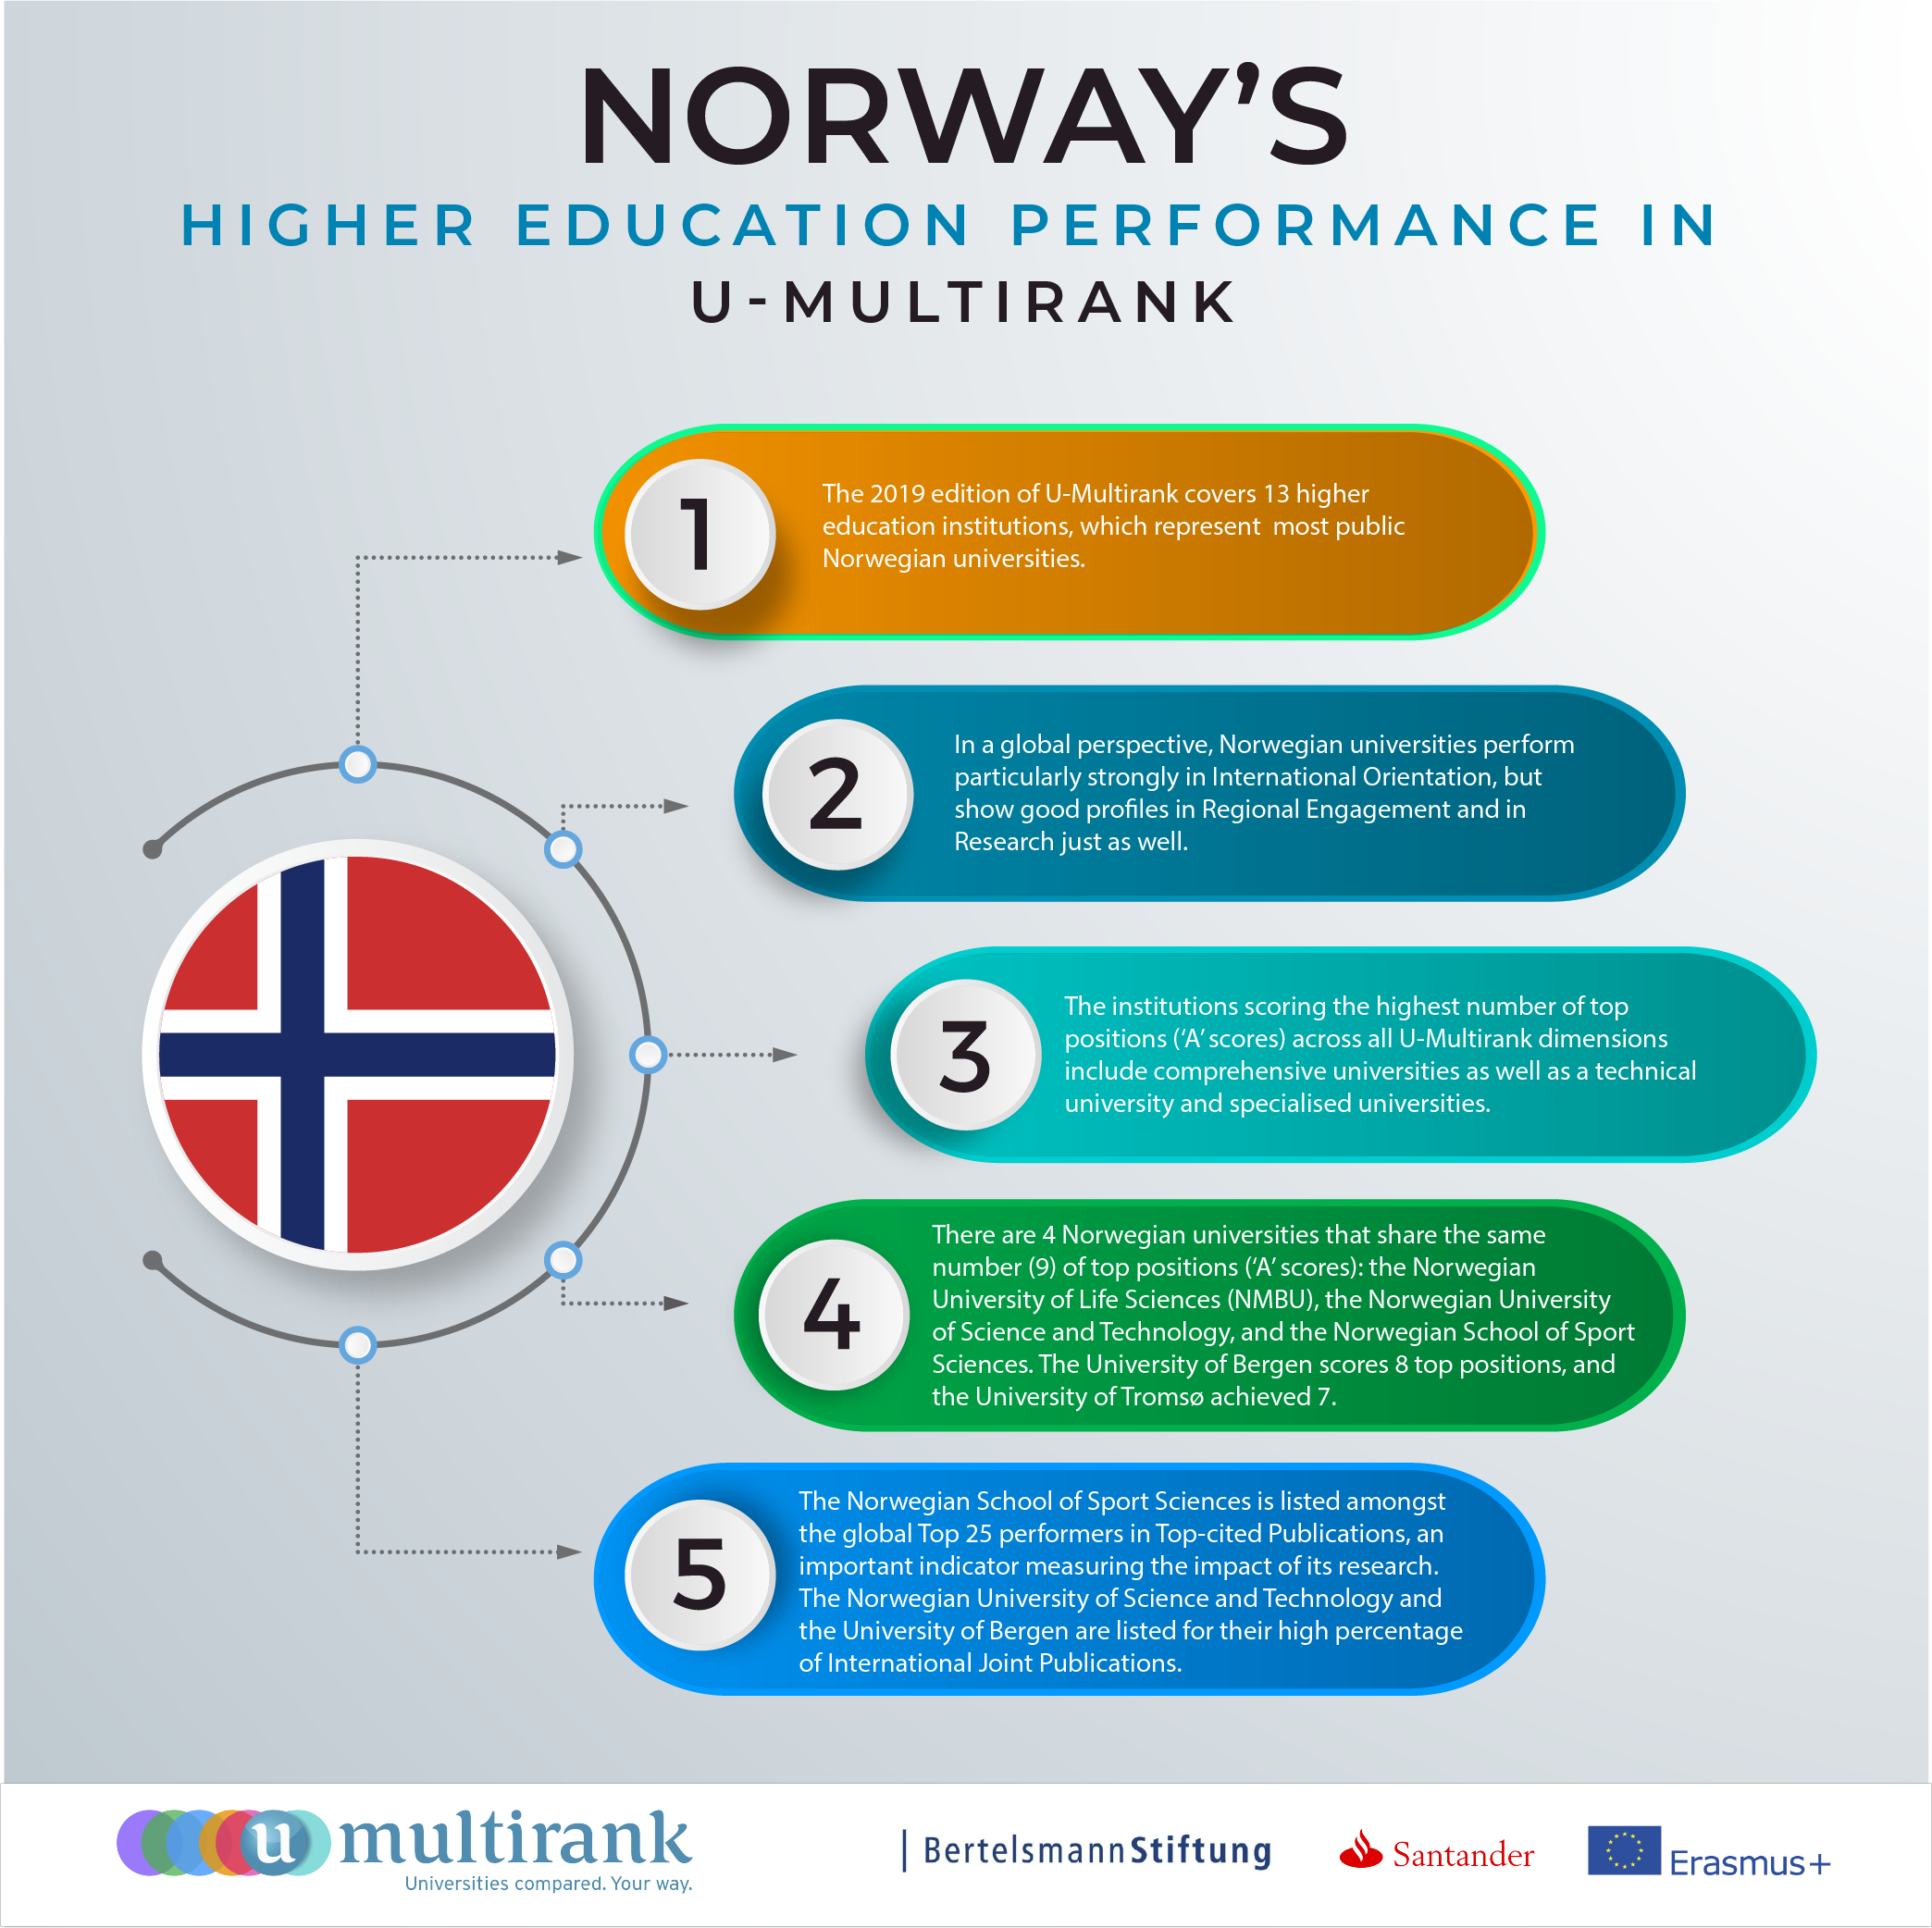 Norway's Higher Education Performance in U-Multirank